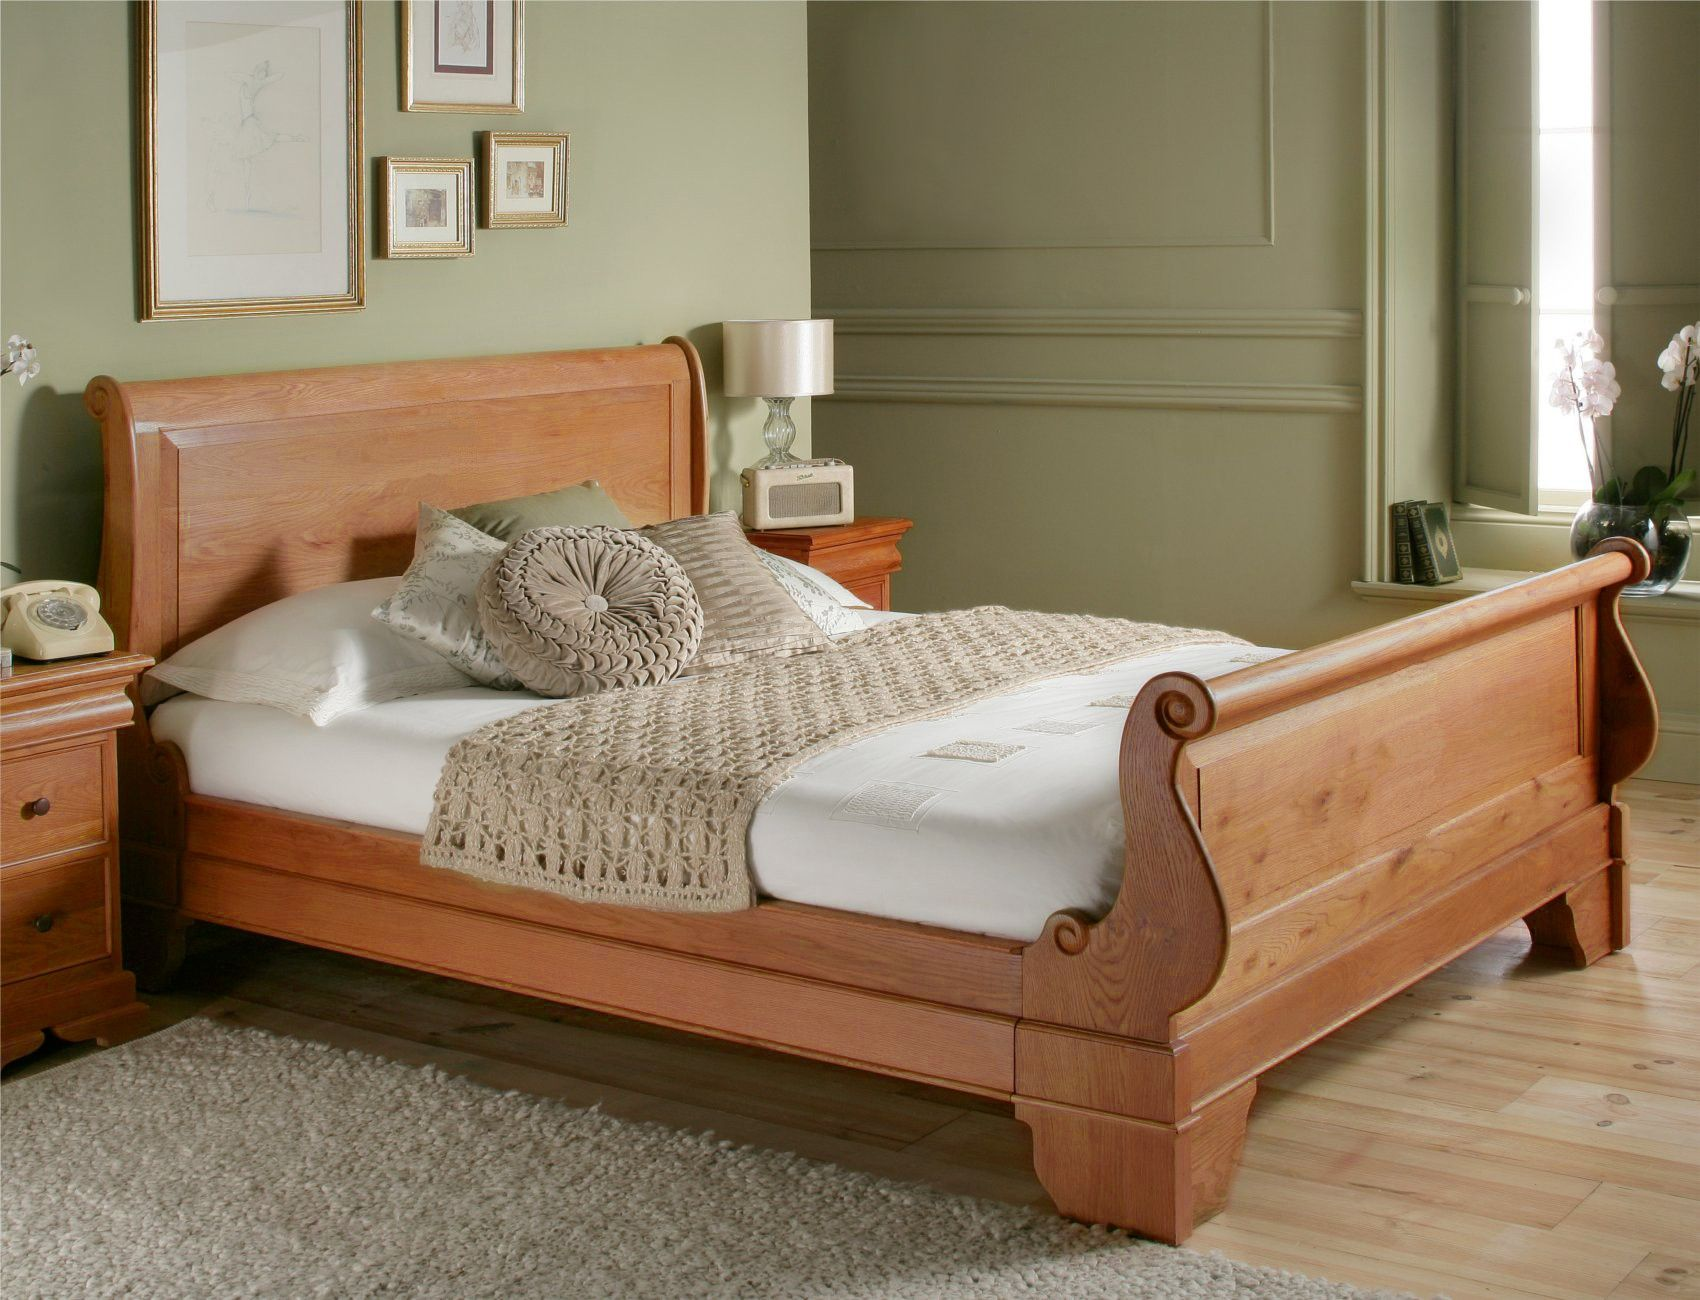 - Toulouse Oak Wooden Sleigh Bed - Light Wood - Wooden Beds - Beds